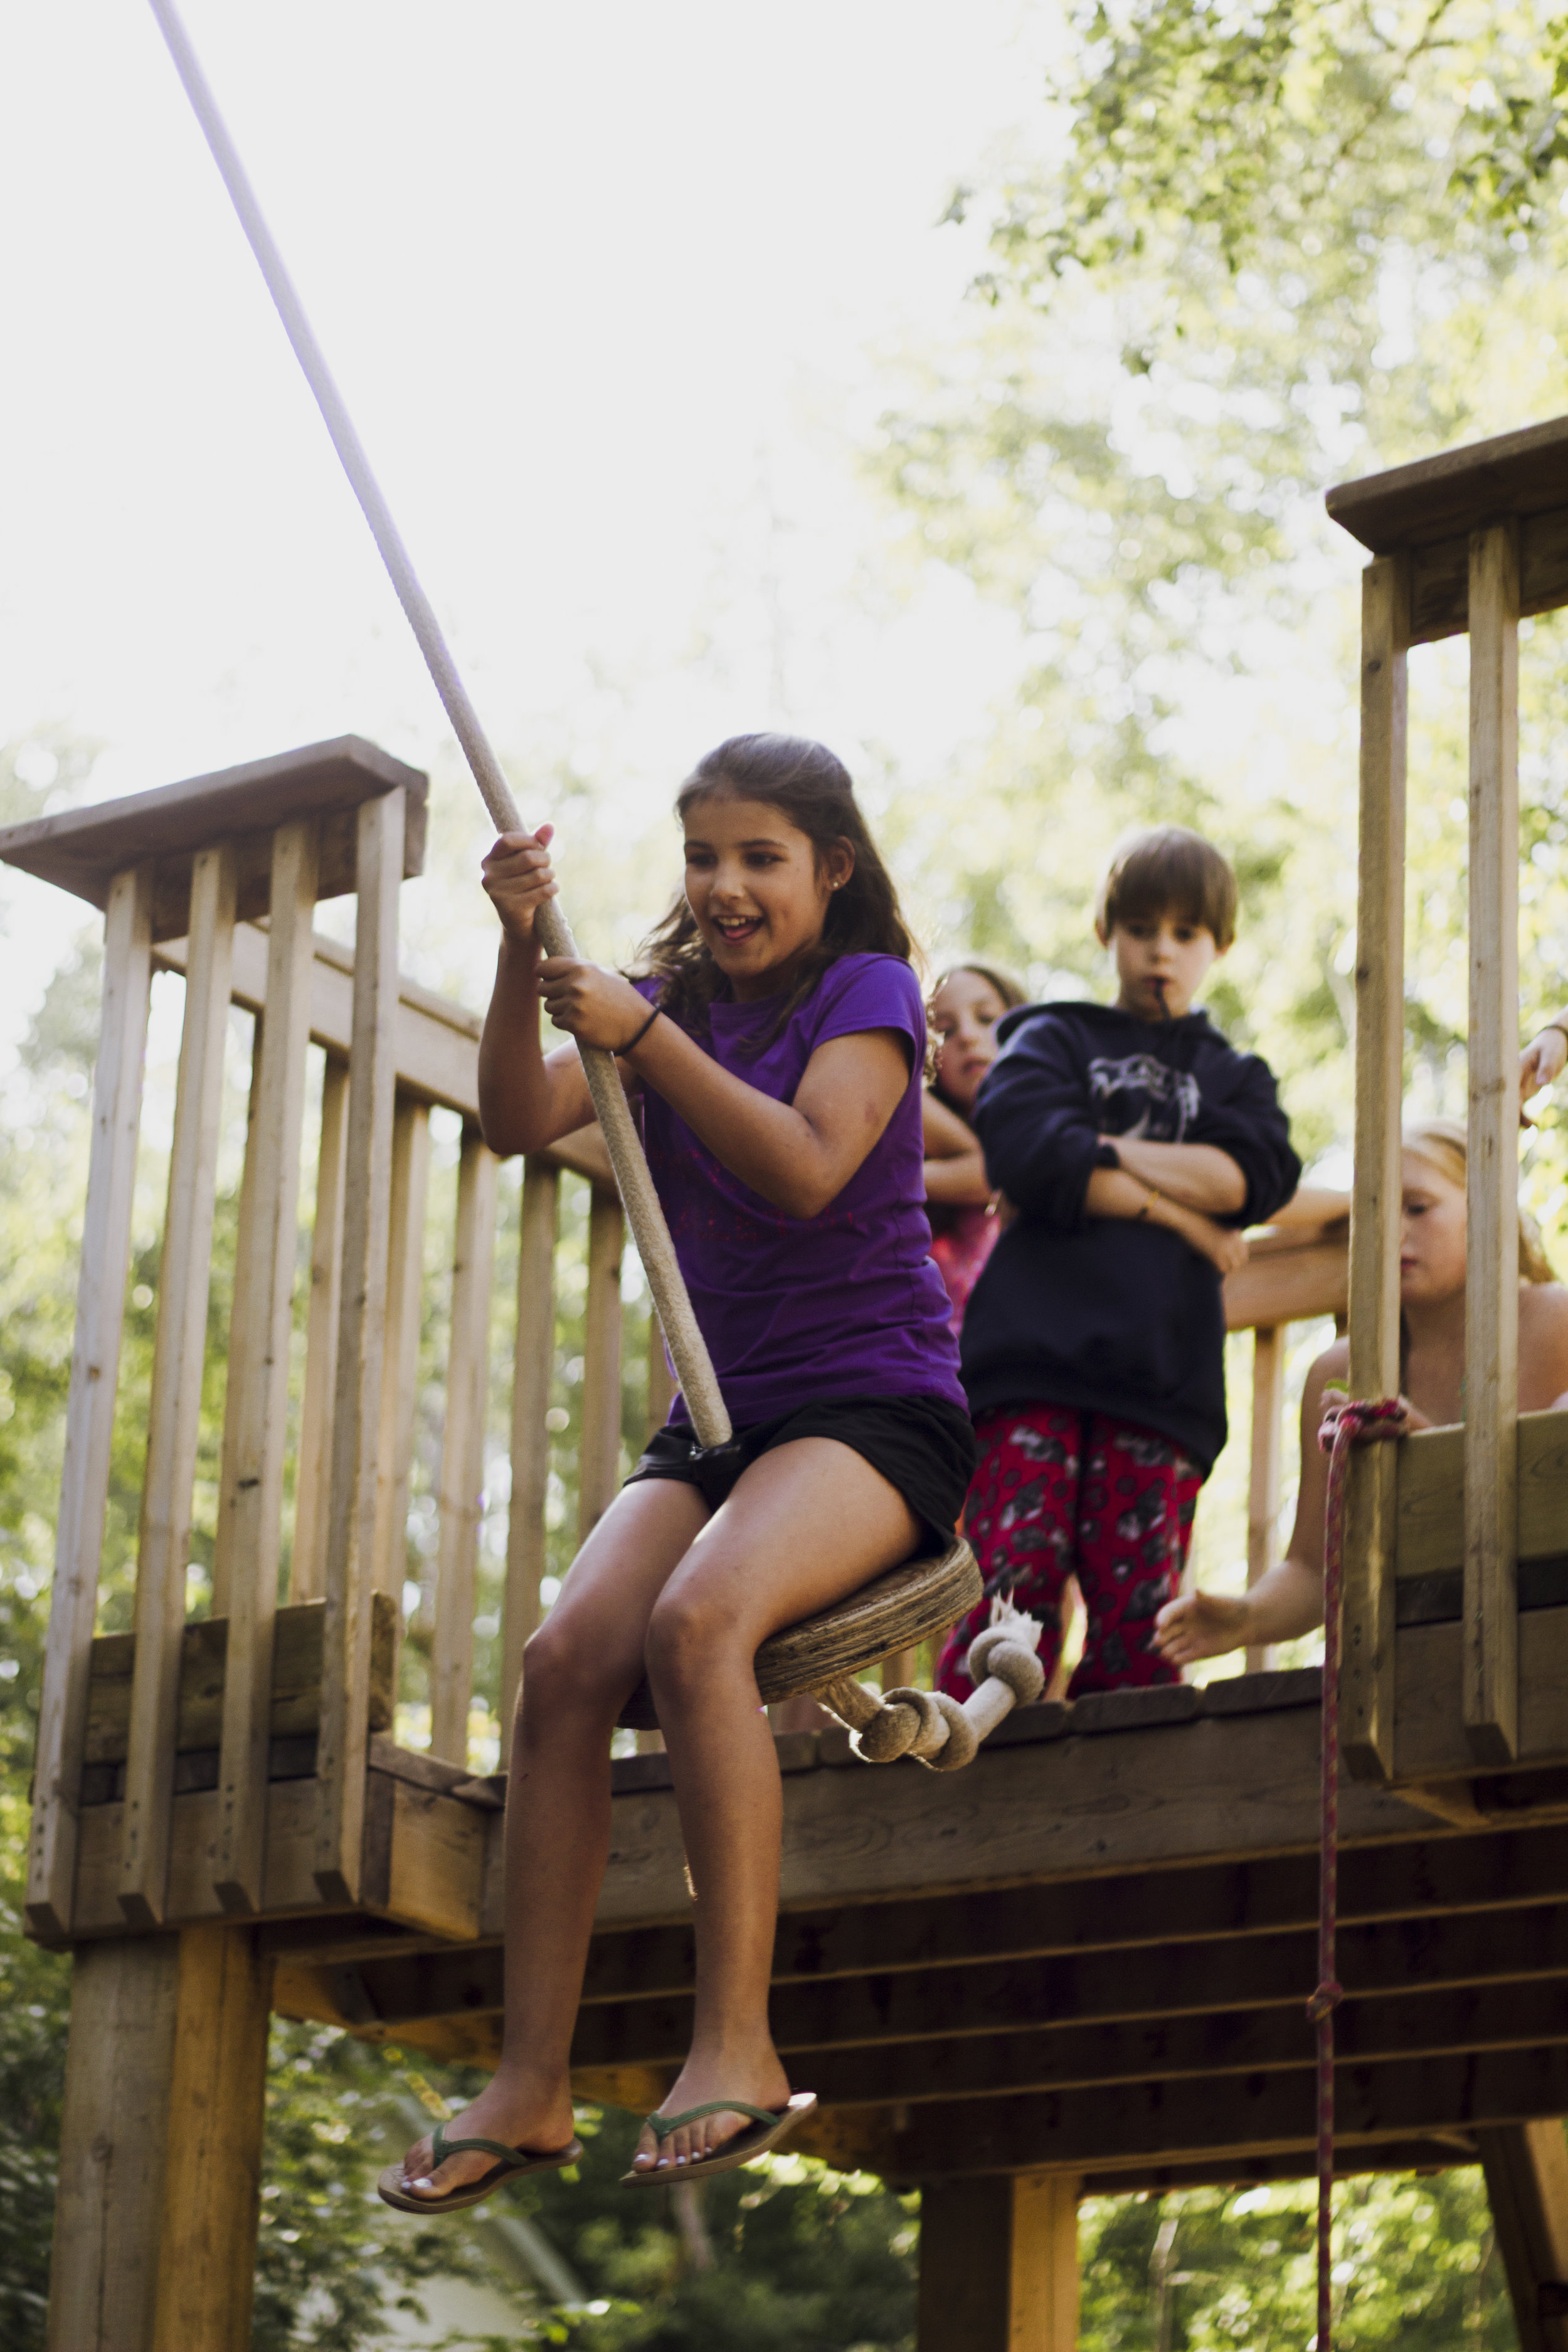 Camp Kadesh Jungle Swing